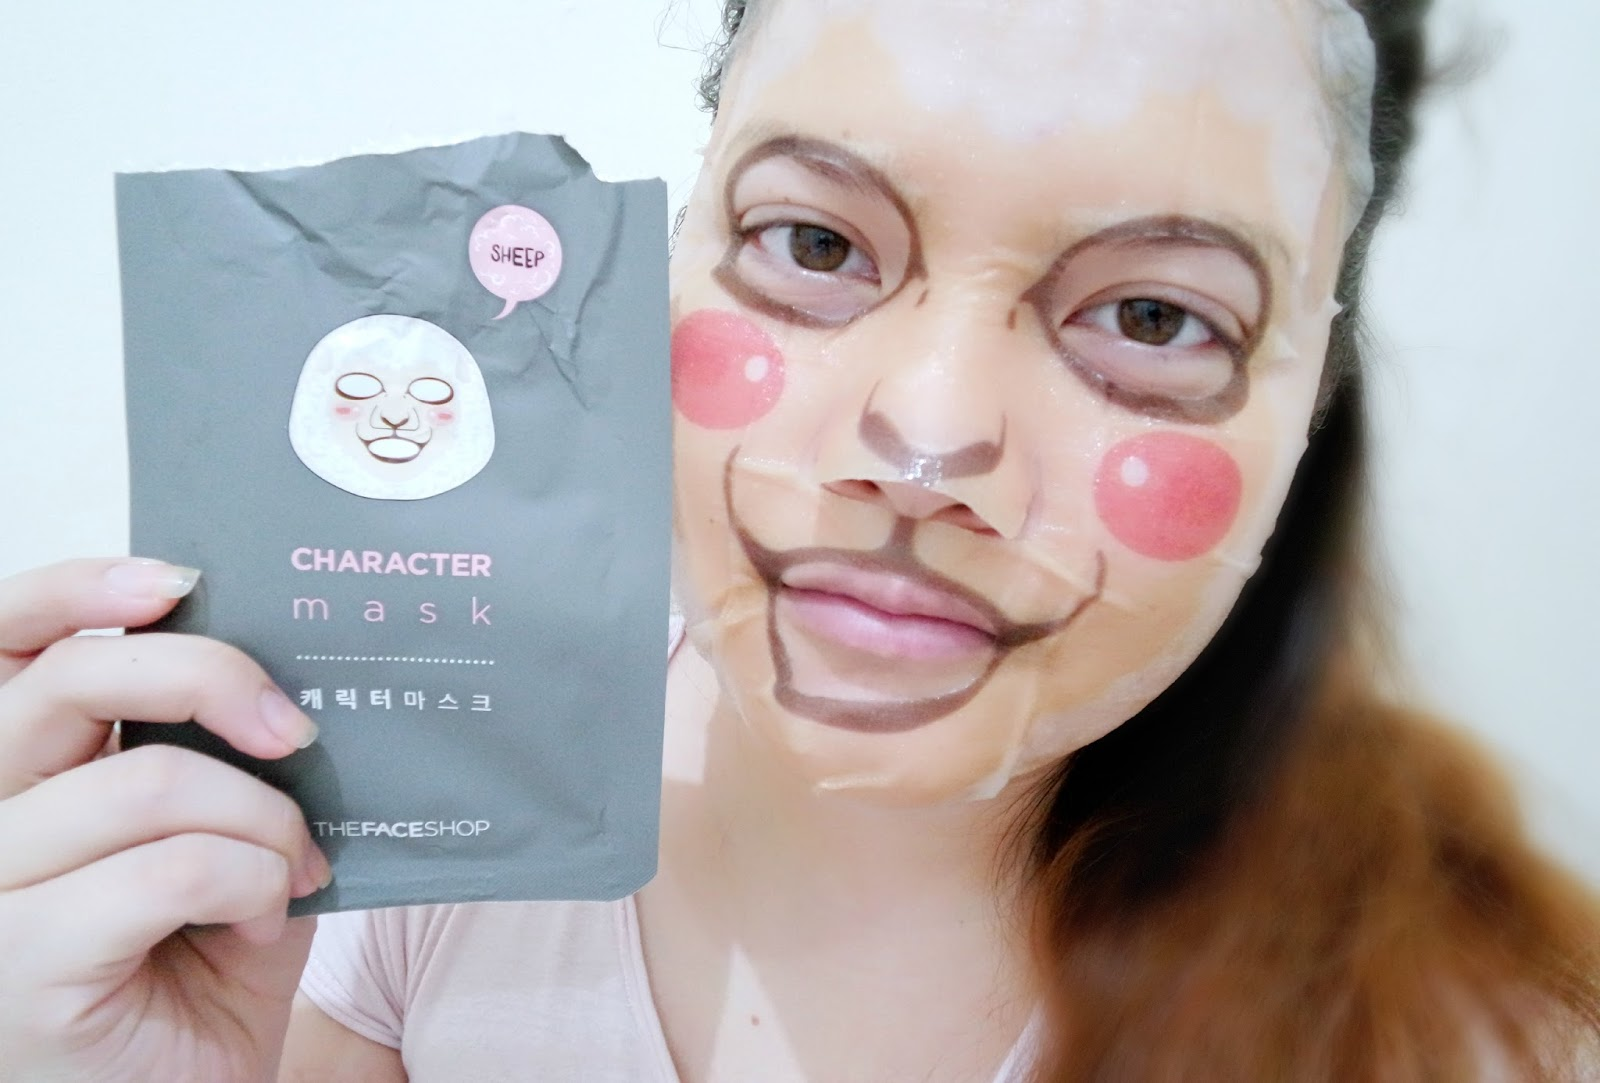 sheep character mask review